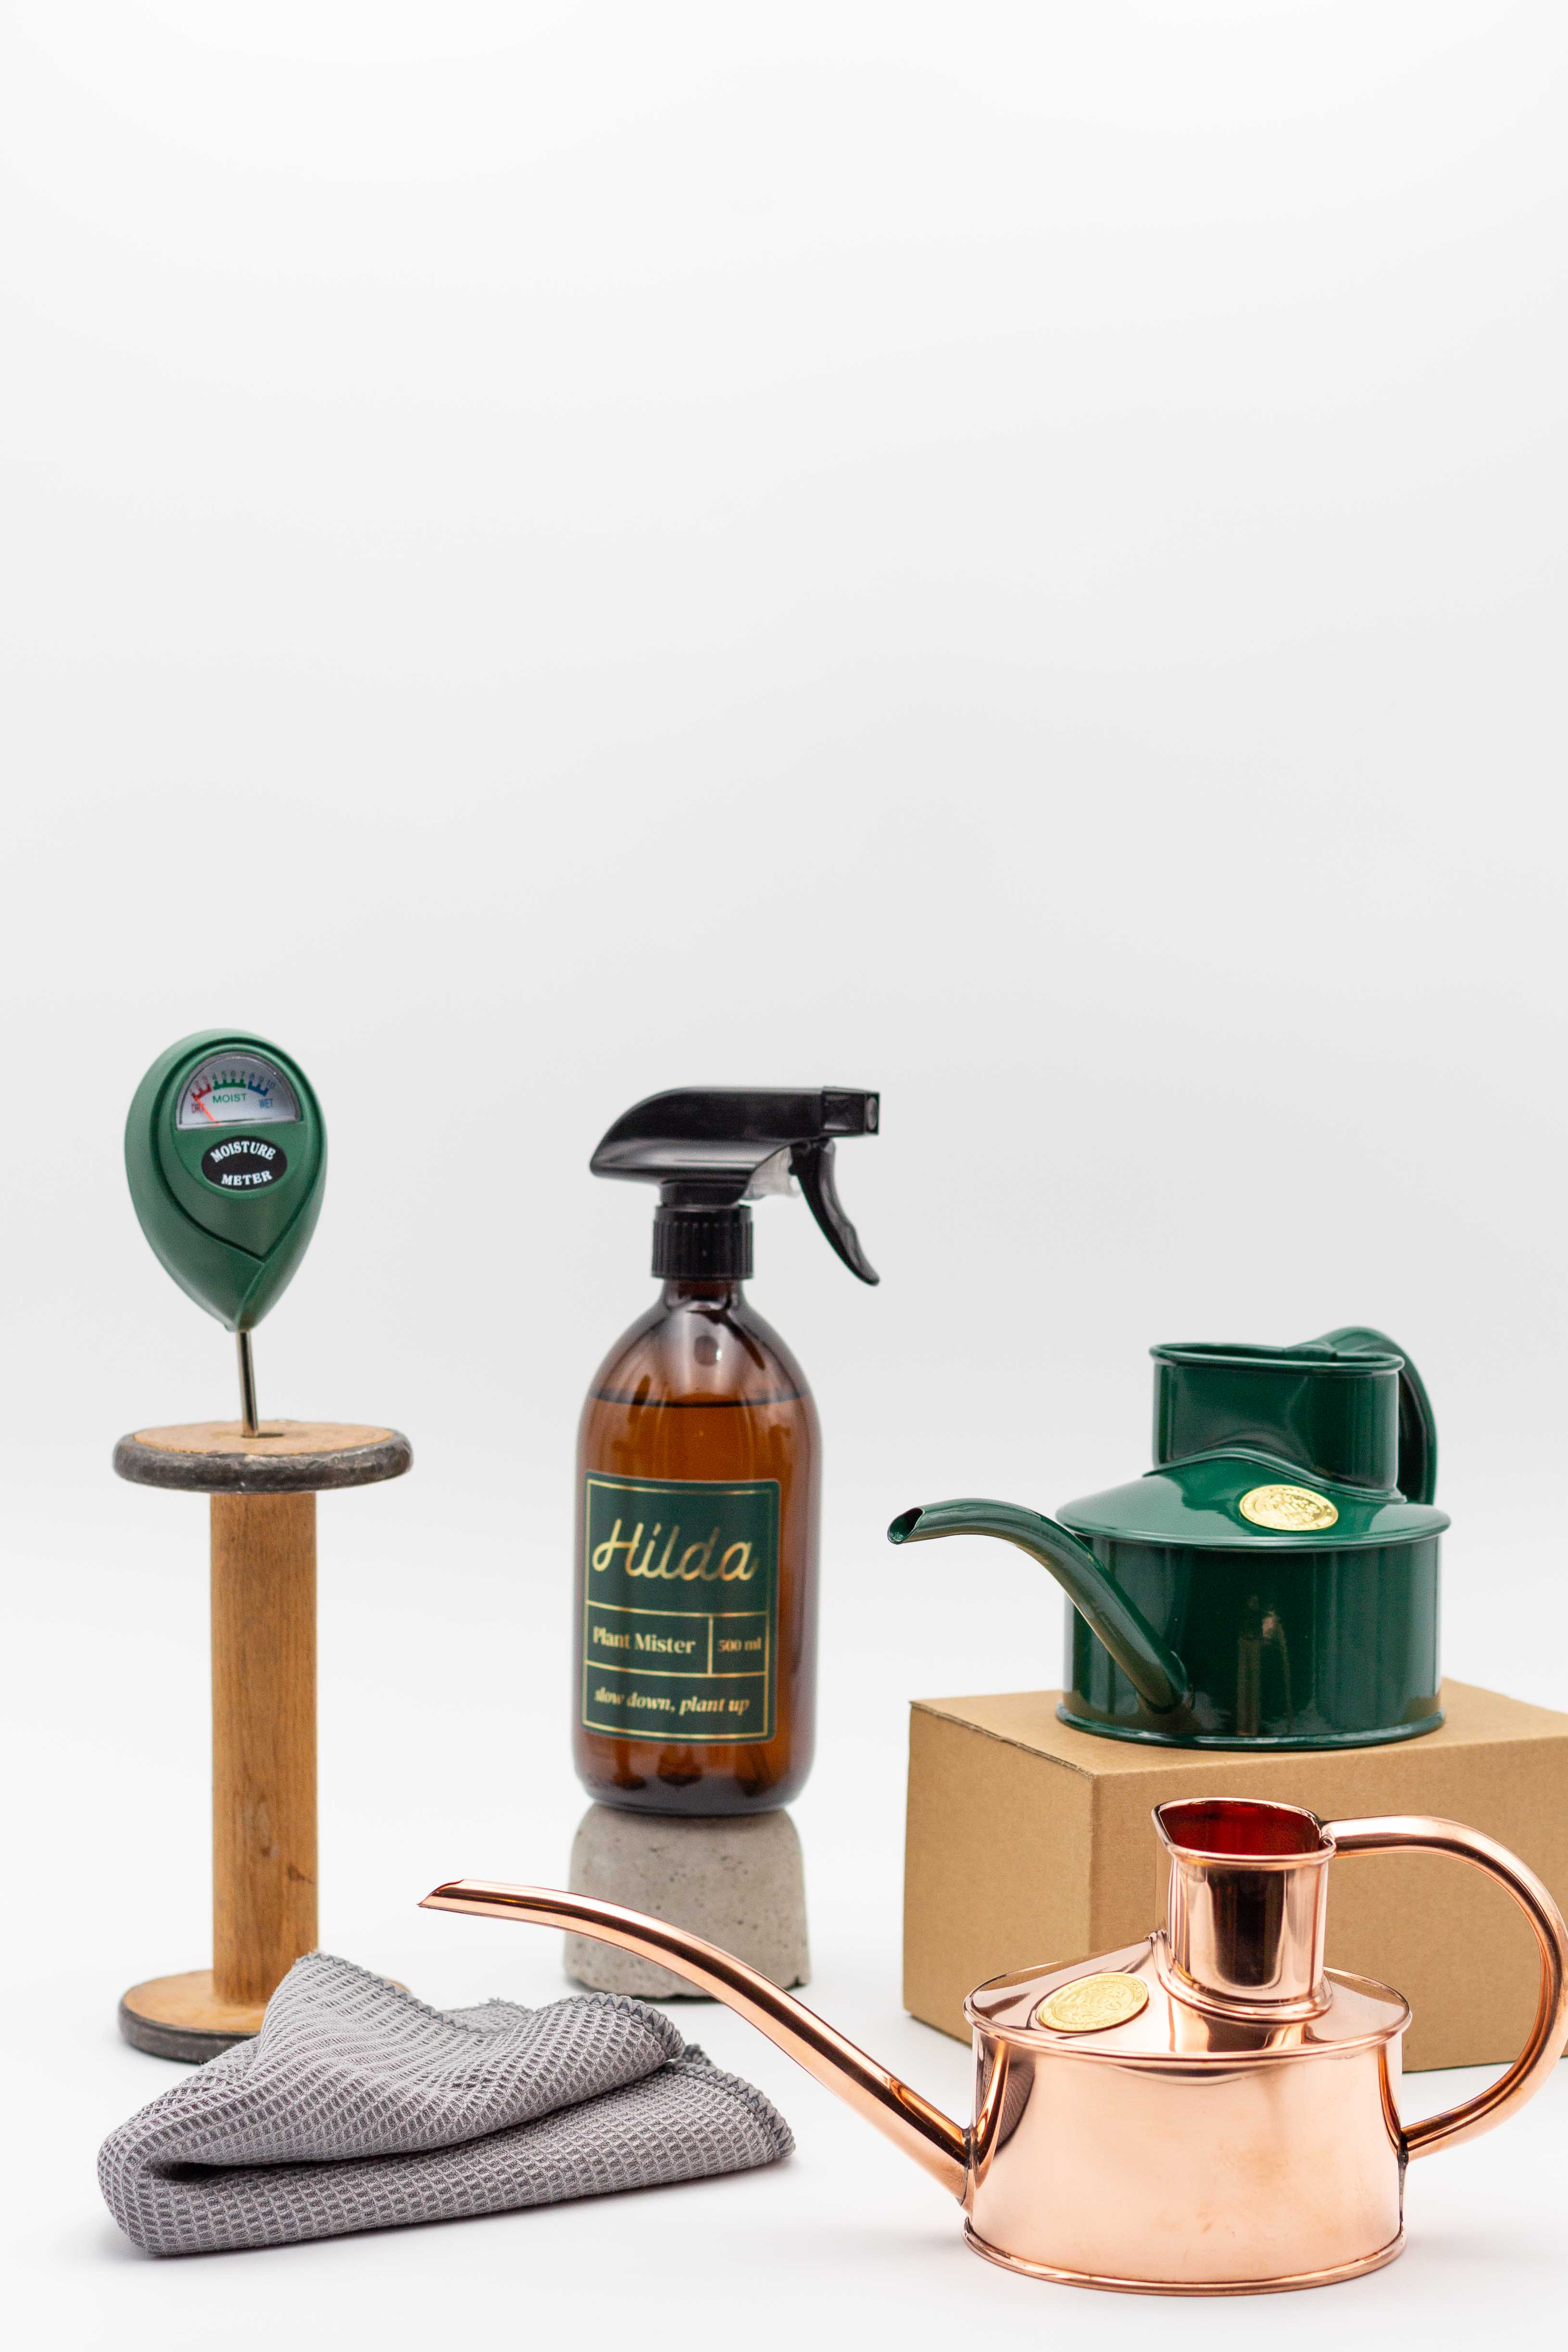 A layout of plant accessories that are great for someone just getting into house plants. Including metal watering cans, plant misters and a moisture meter.